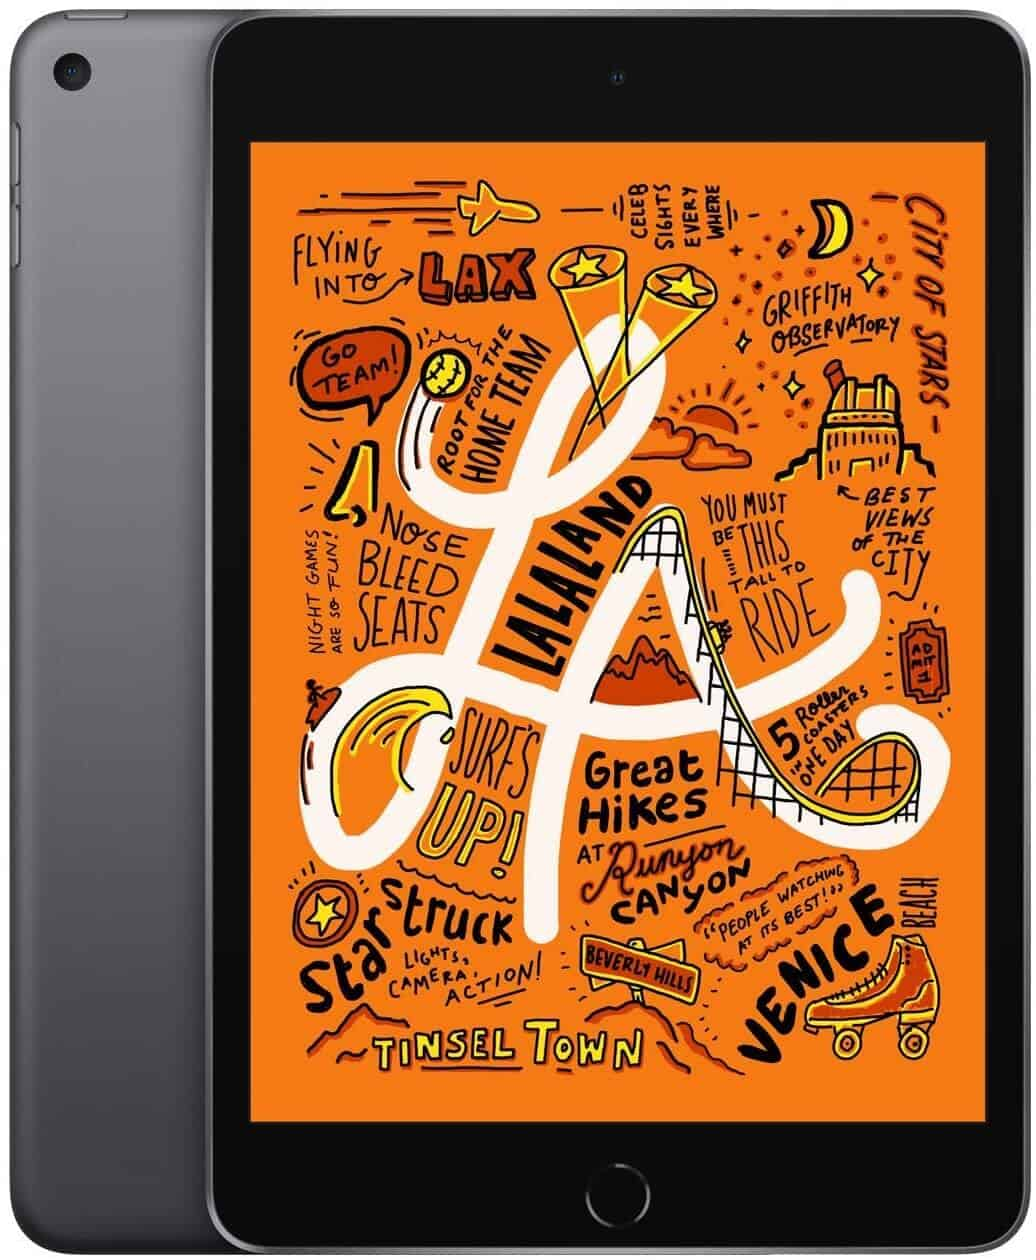 Apple iPad Mini (Latest Model) - Best iPad Stylus For Note Taking